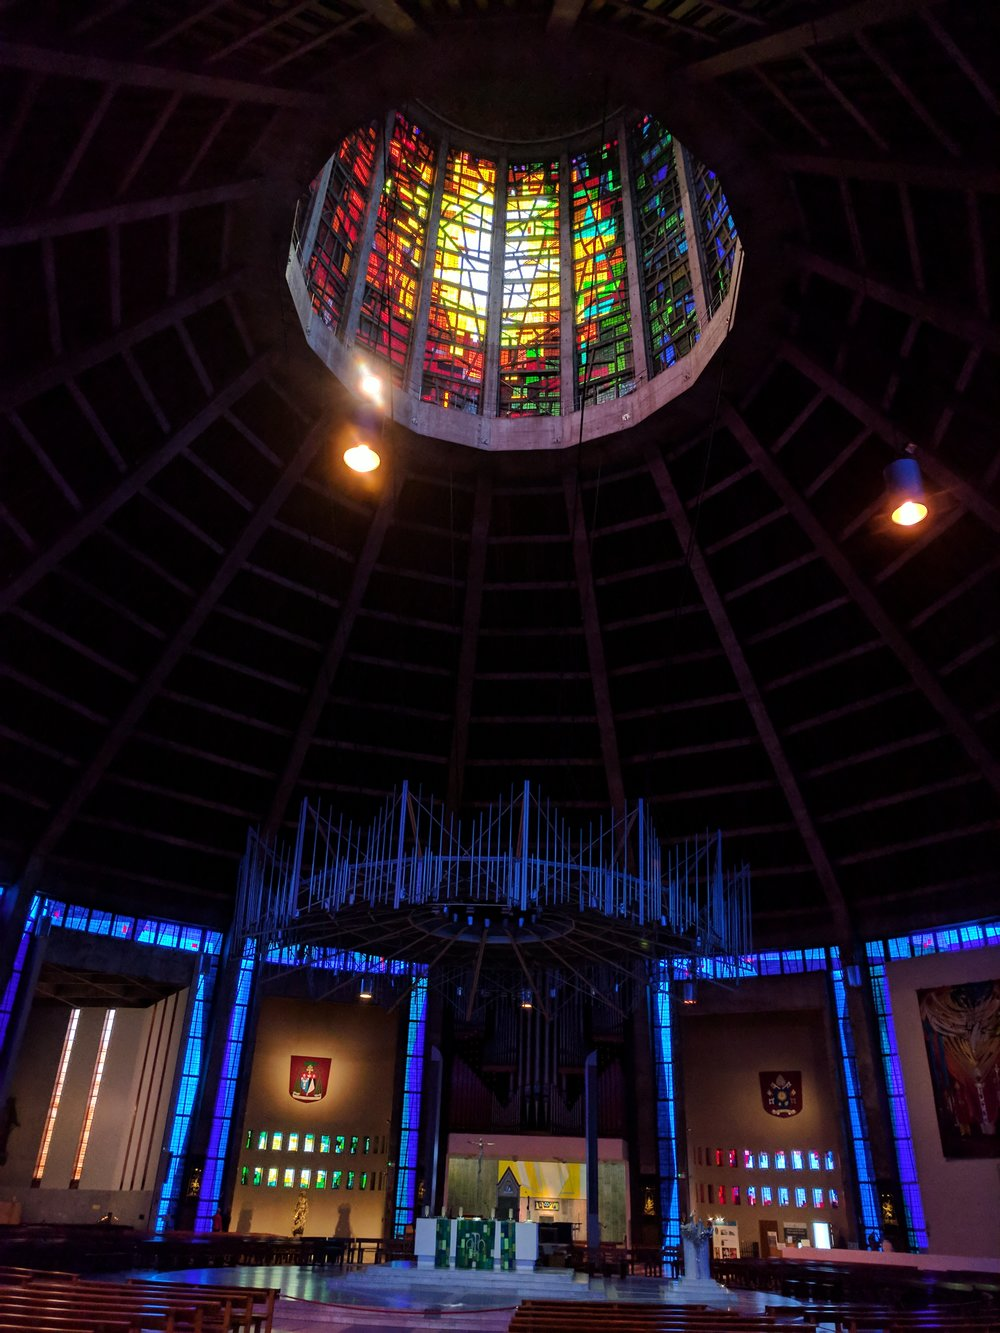 Inside of the Liverpool Metropolitan Cathedral